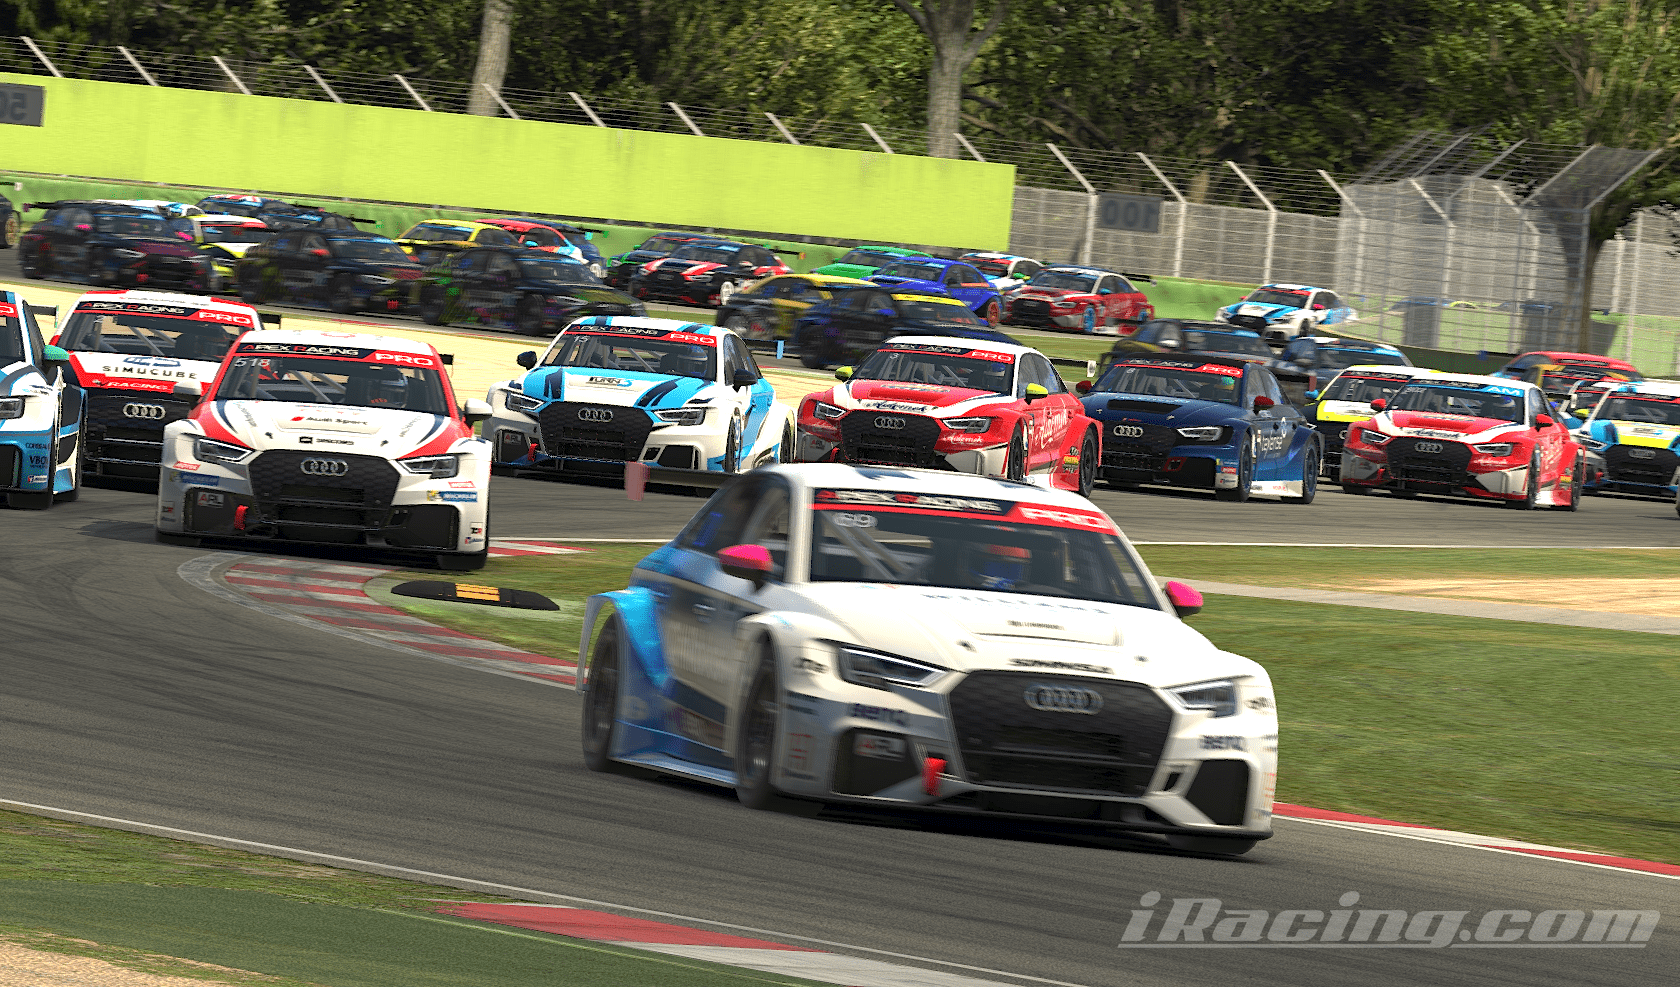 ARLTC Season 1 – R4 Imola Report